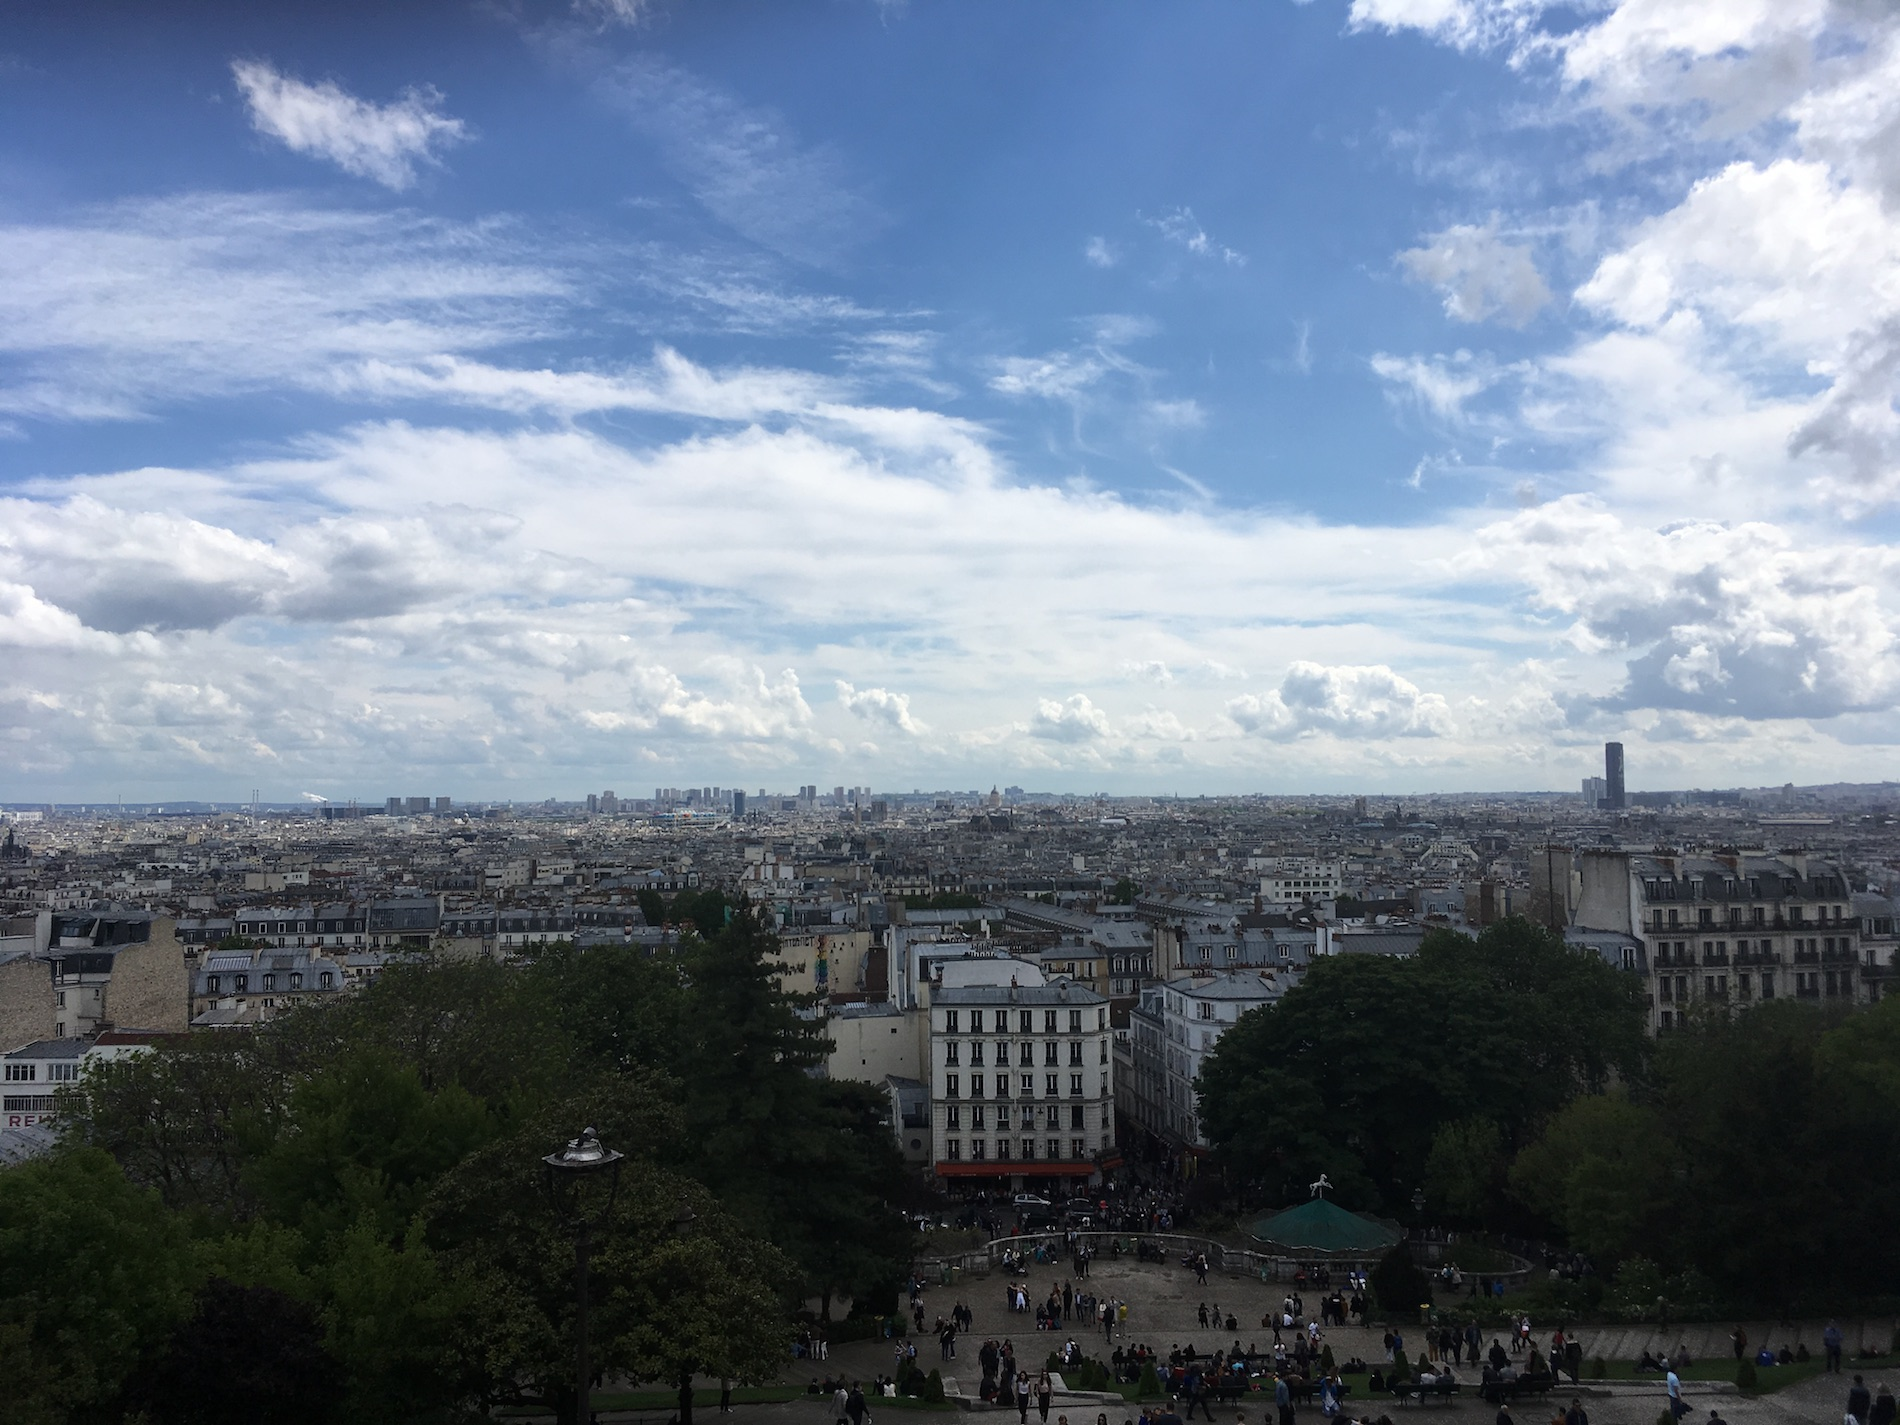 The city of paris from a raised position, photo by Hoverbear